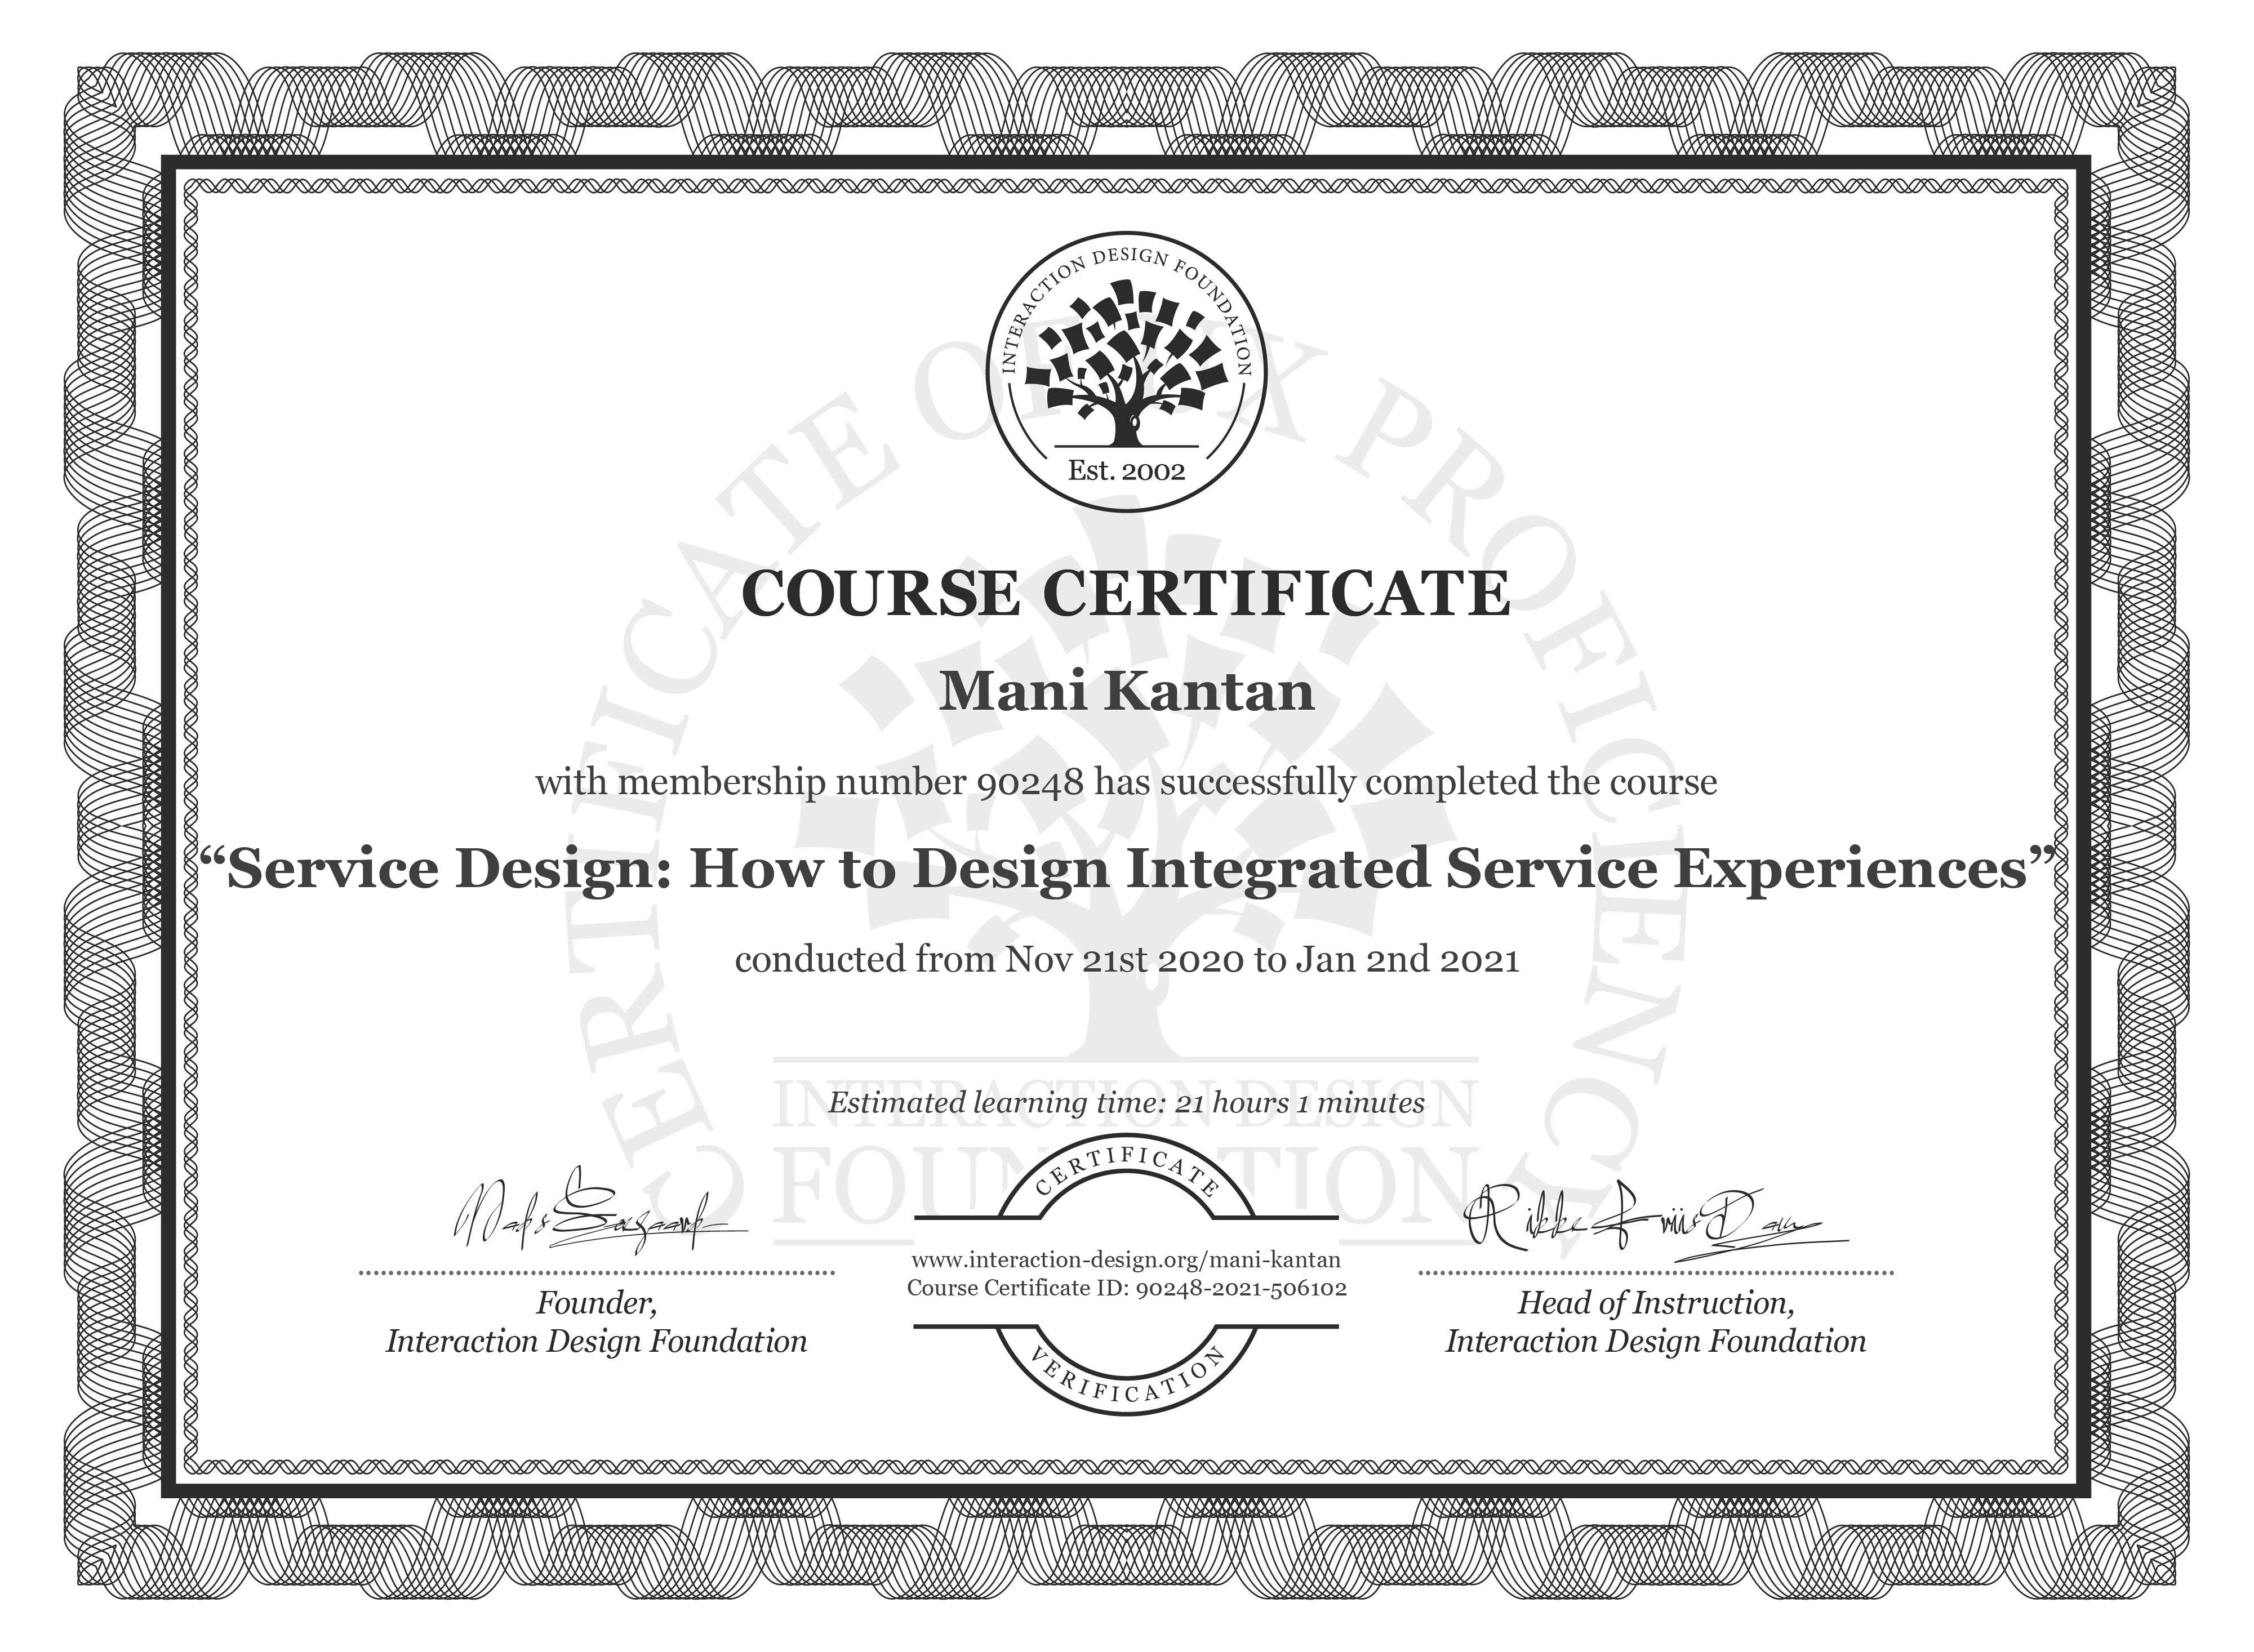 Mani Kantan's Course Certificate: Service Design: How to Design Integrated Service Experiences